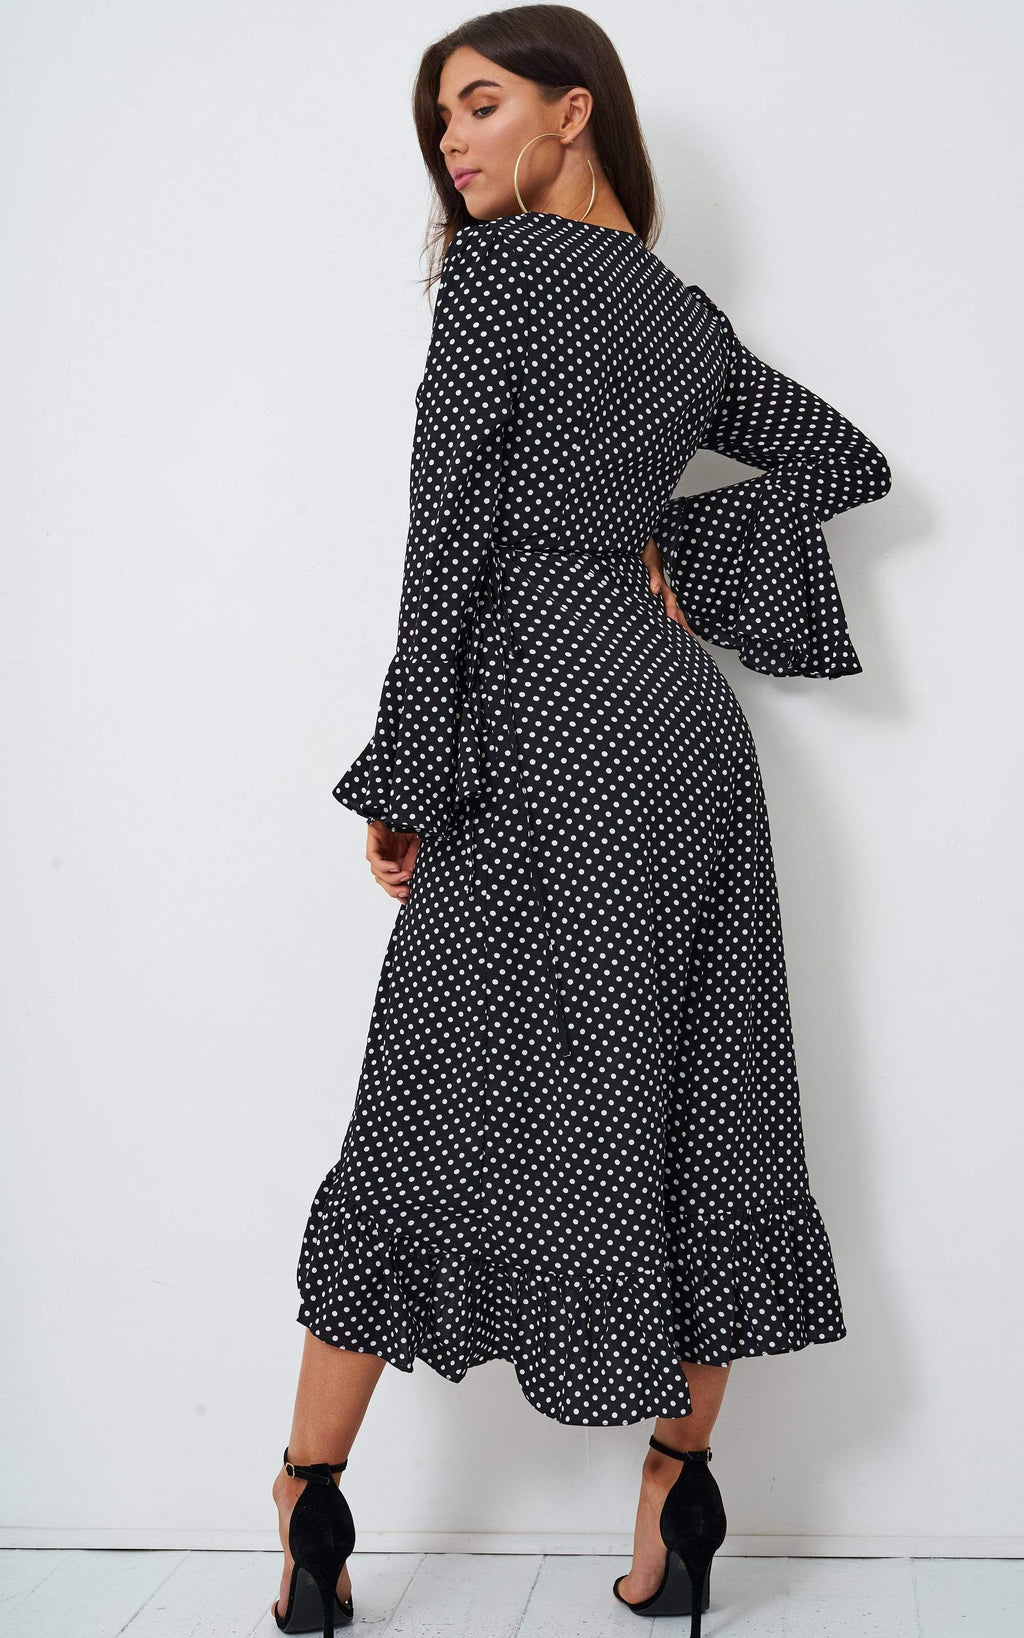 Antoniya Black Polka Dot Long Sleeve Dress - love frontrow